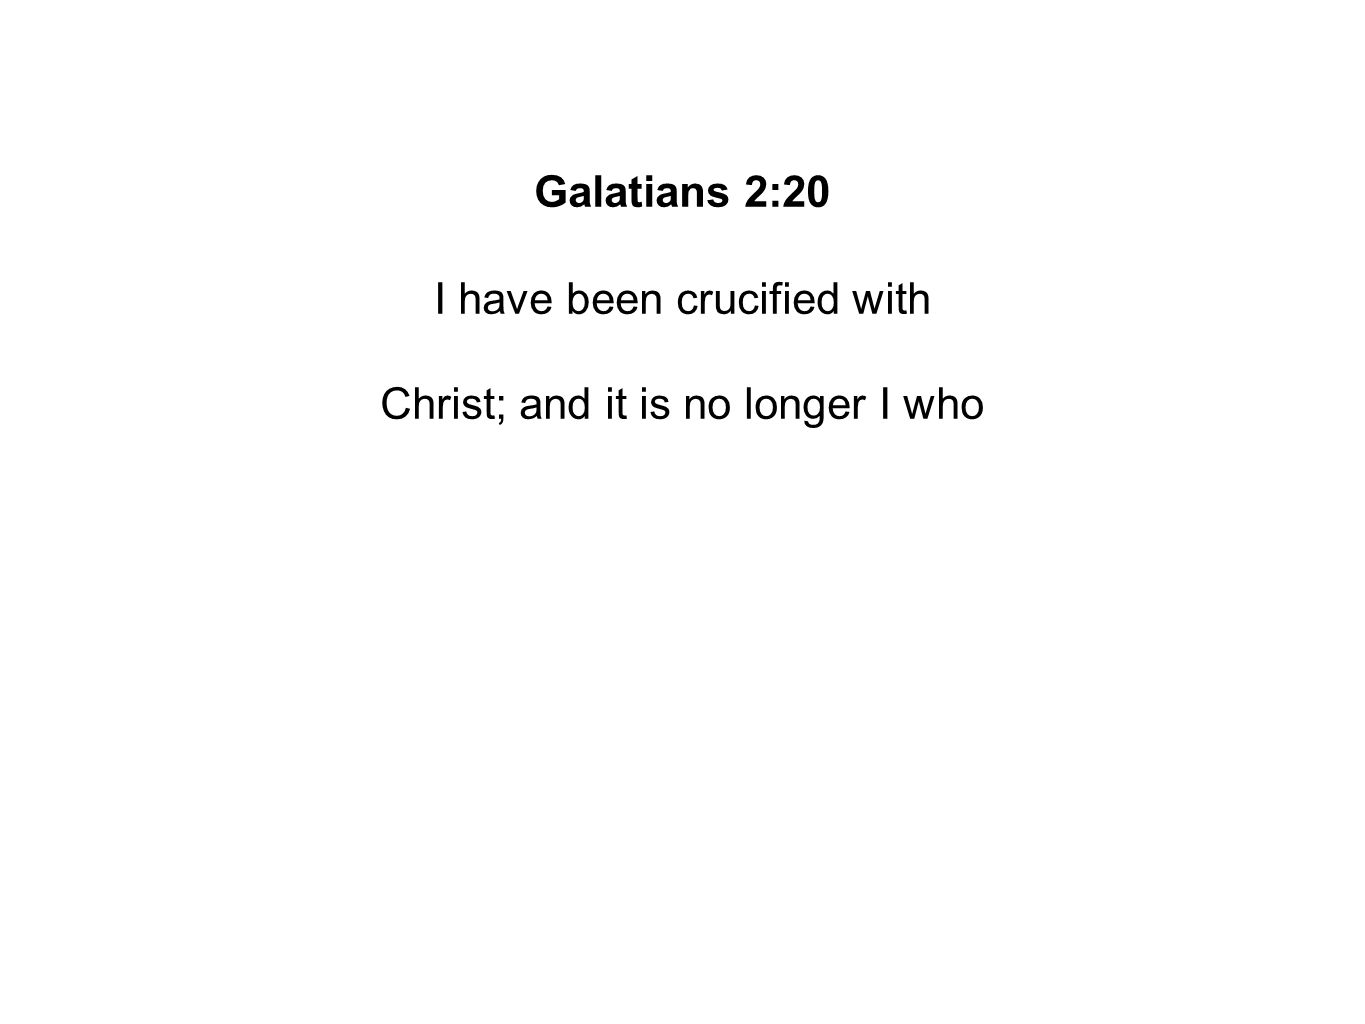 Galatians 2:20 I have been crucified with Christ; and it is no longer I who